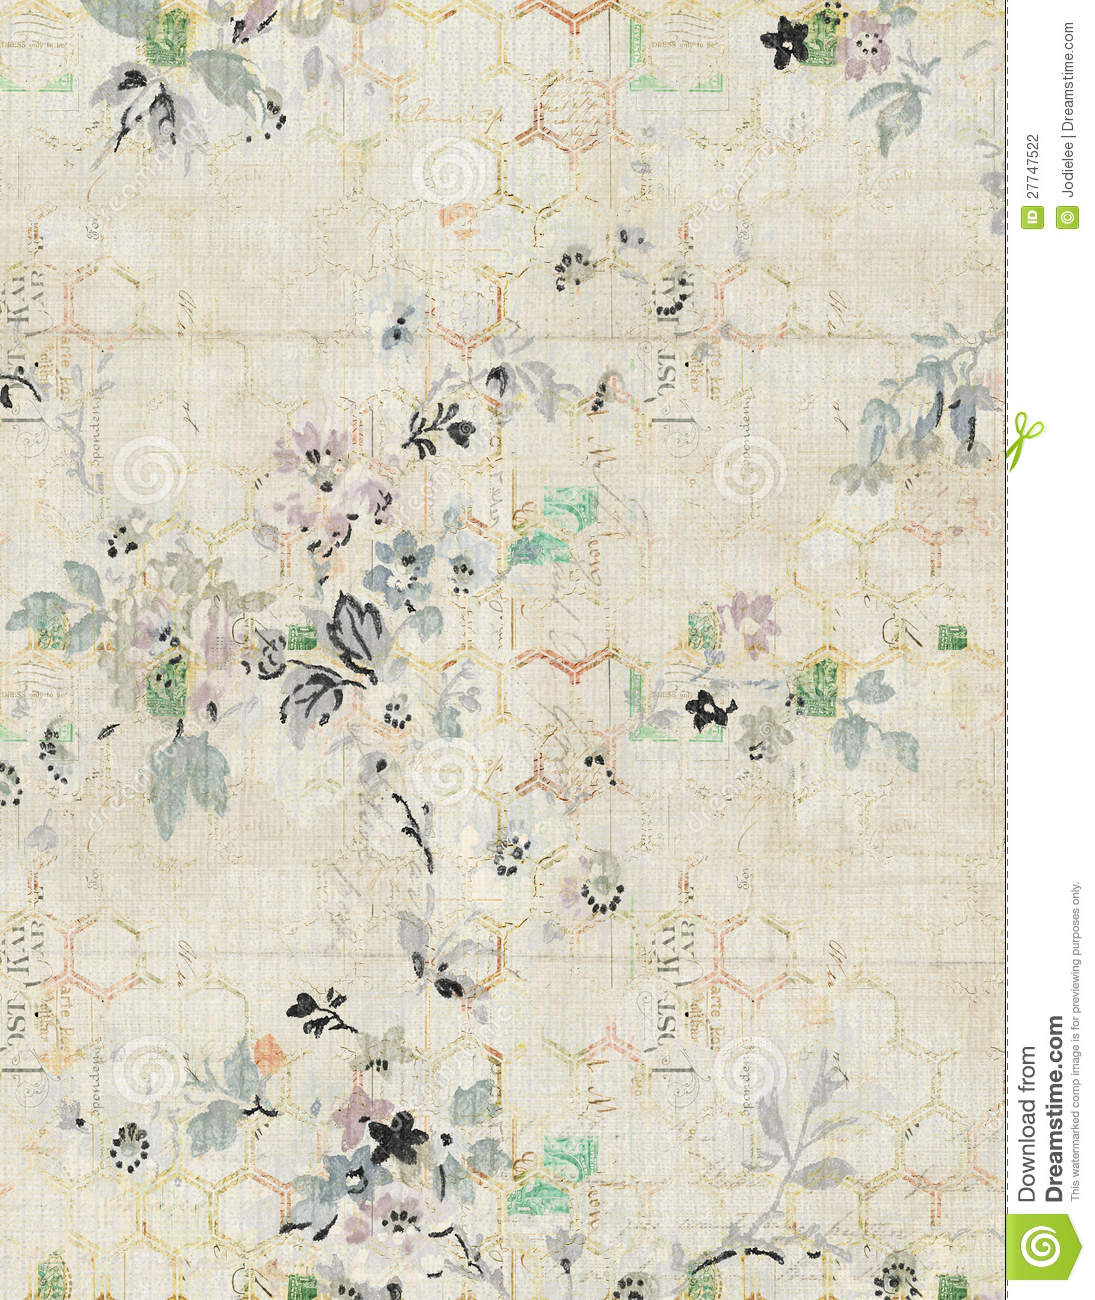 Shabby Chic Vintage Floral Background Stock Photo Image Of